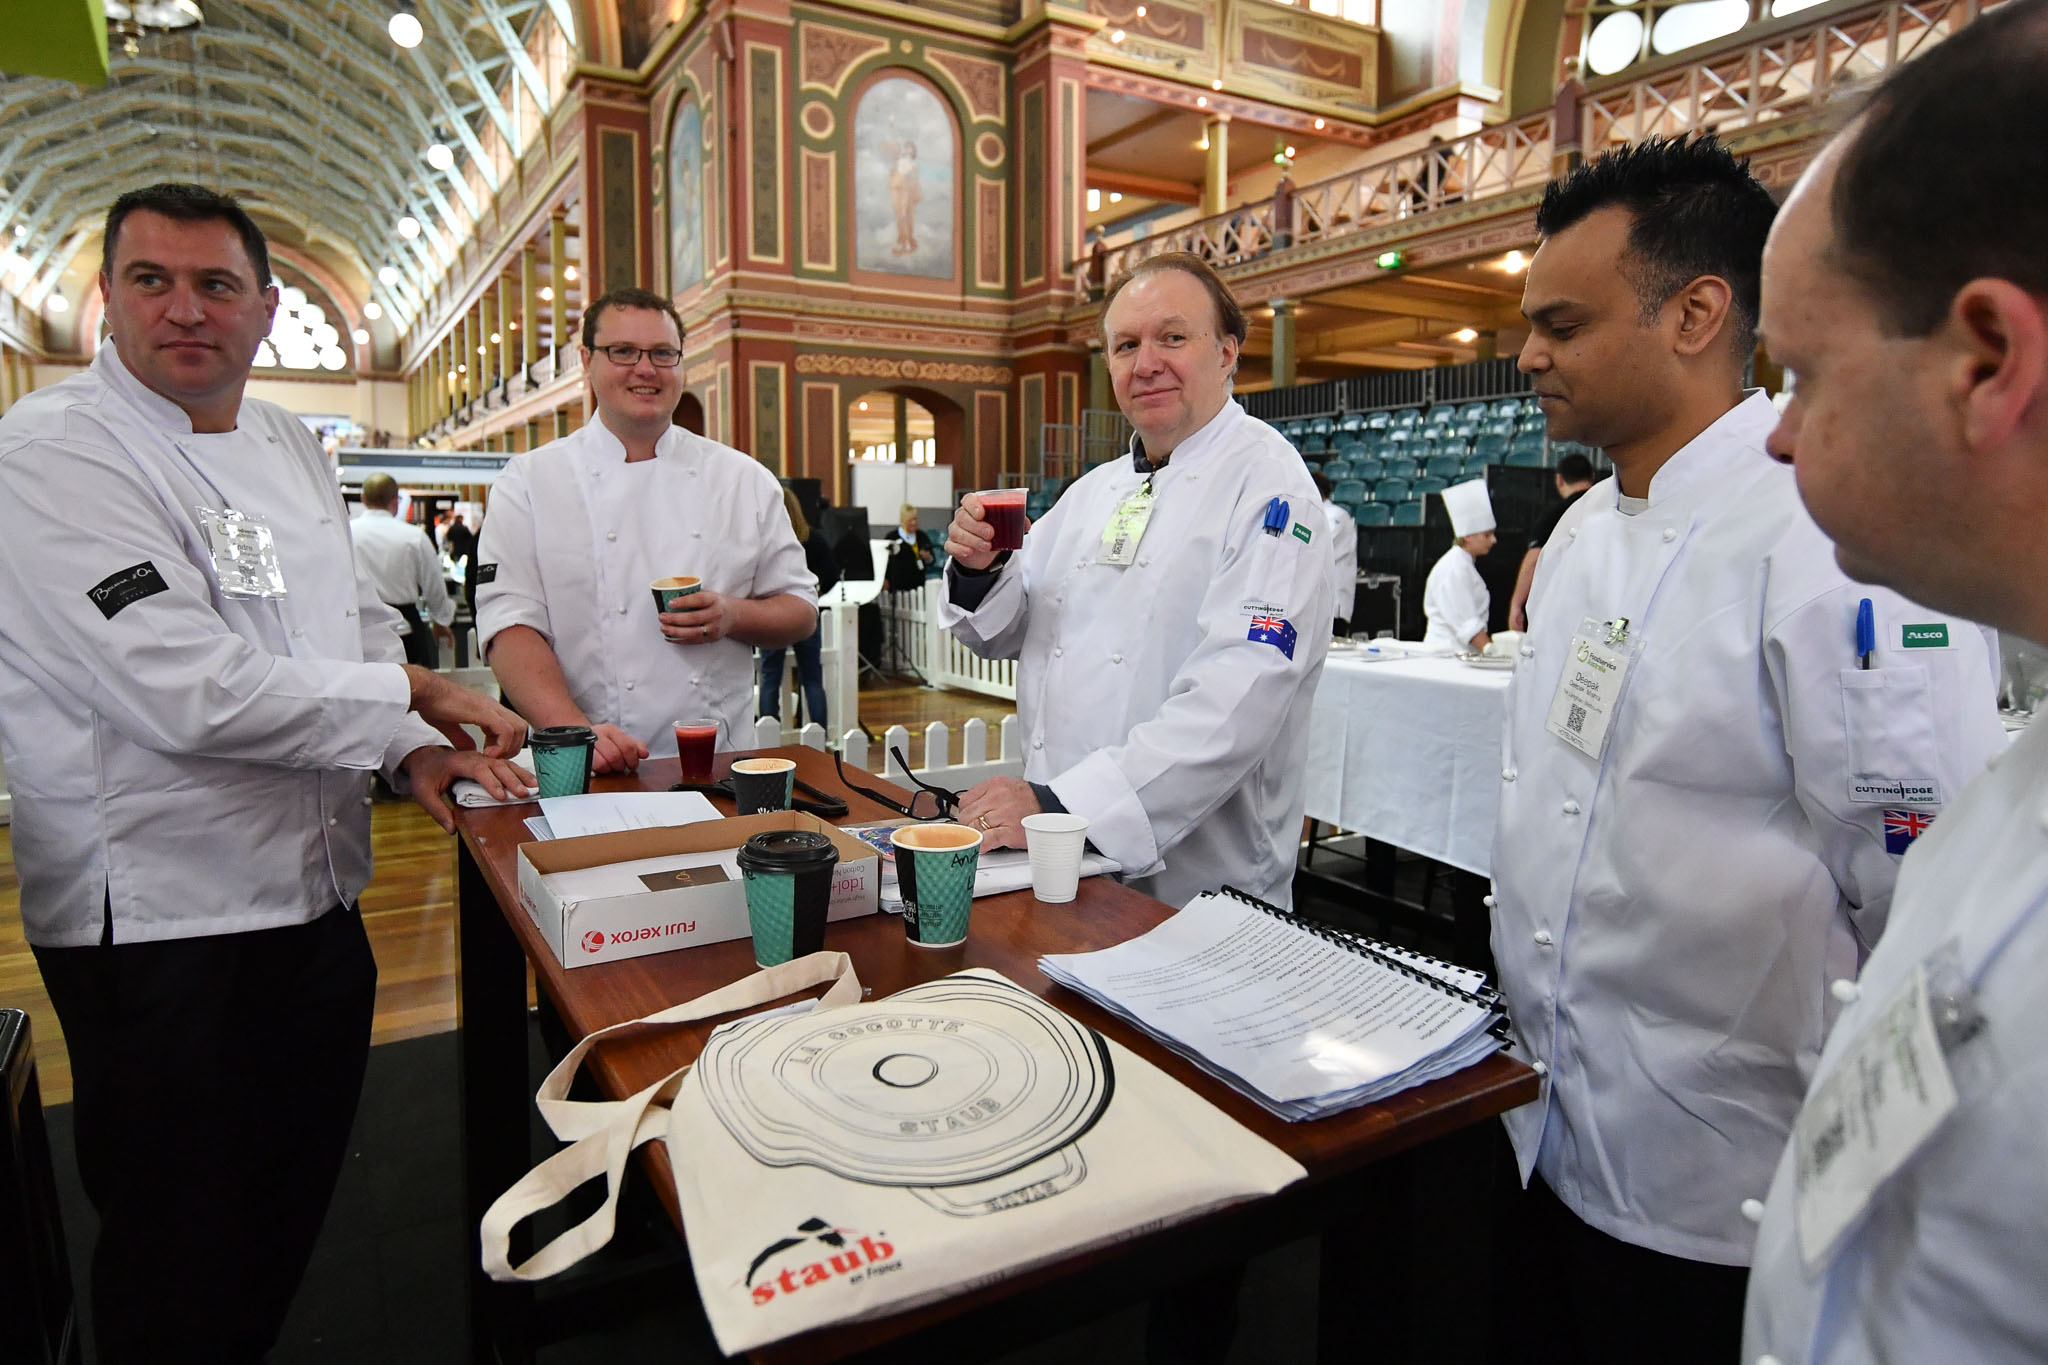 Melbourne, 30 May 2017 - Head judge Philippe Mouchel from the Philippe Restaurant kitchen invigilator judge prepares to brief the judges at the Australian selection trials of the Bocuse d'Or culinary competition held during the Food Service Australia show at the Royal Exhibition Building in Melbourne, Australia. Photo Sydney Low